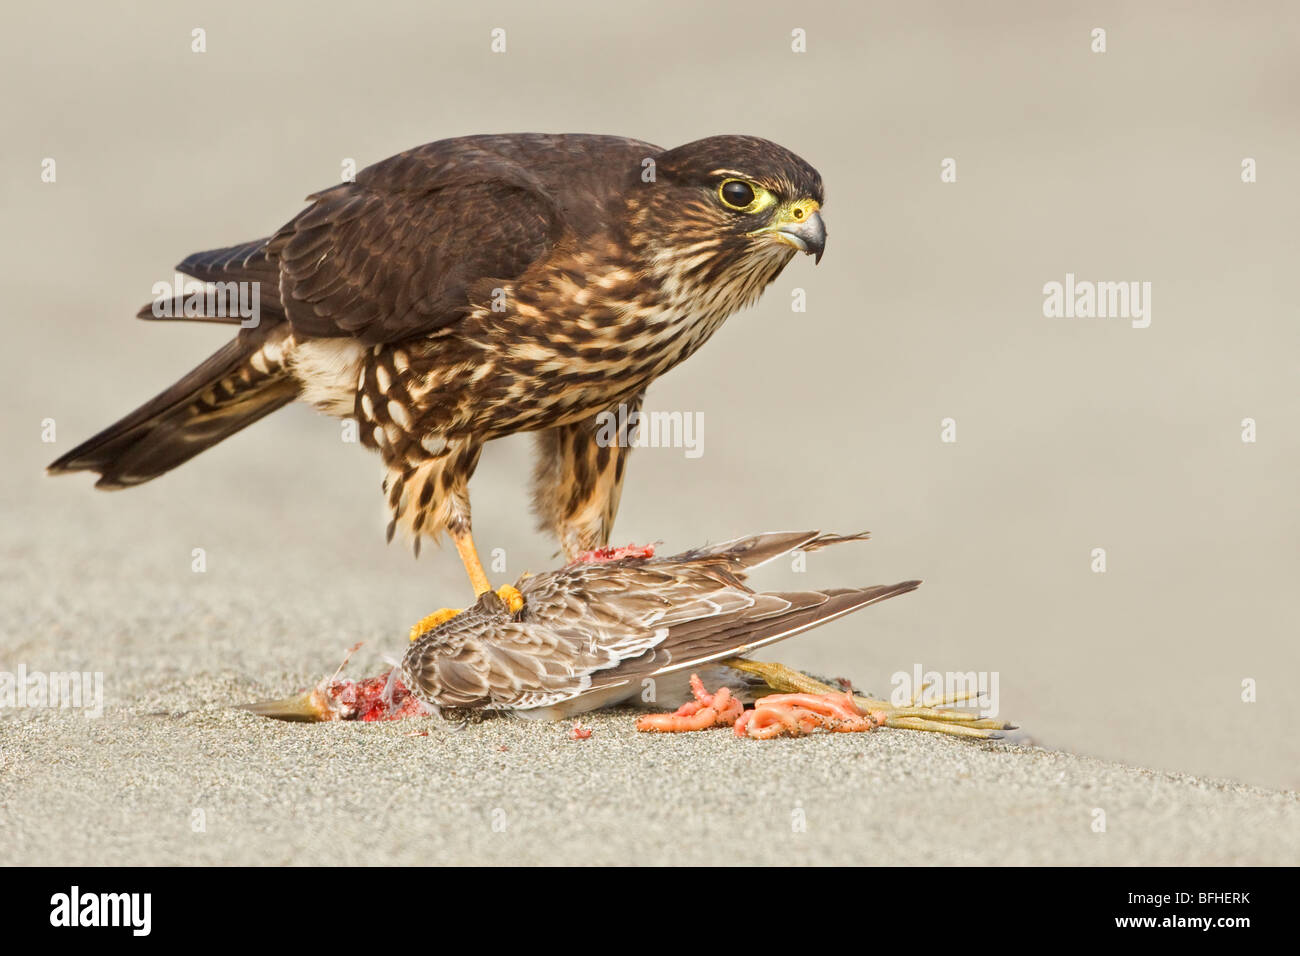 Merlin (Falco columbarius) perched on the beach feeding on a shorebird in Washington, USA. Stock Photo